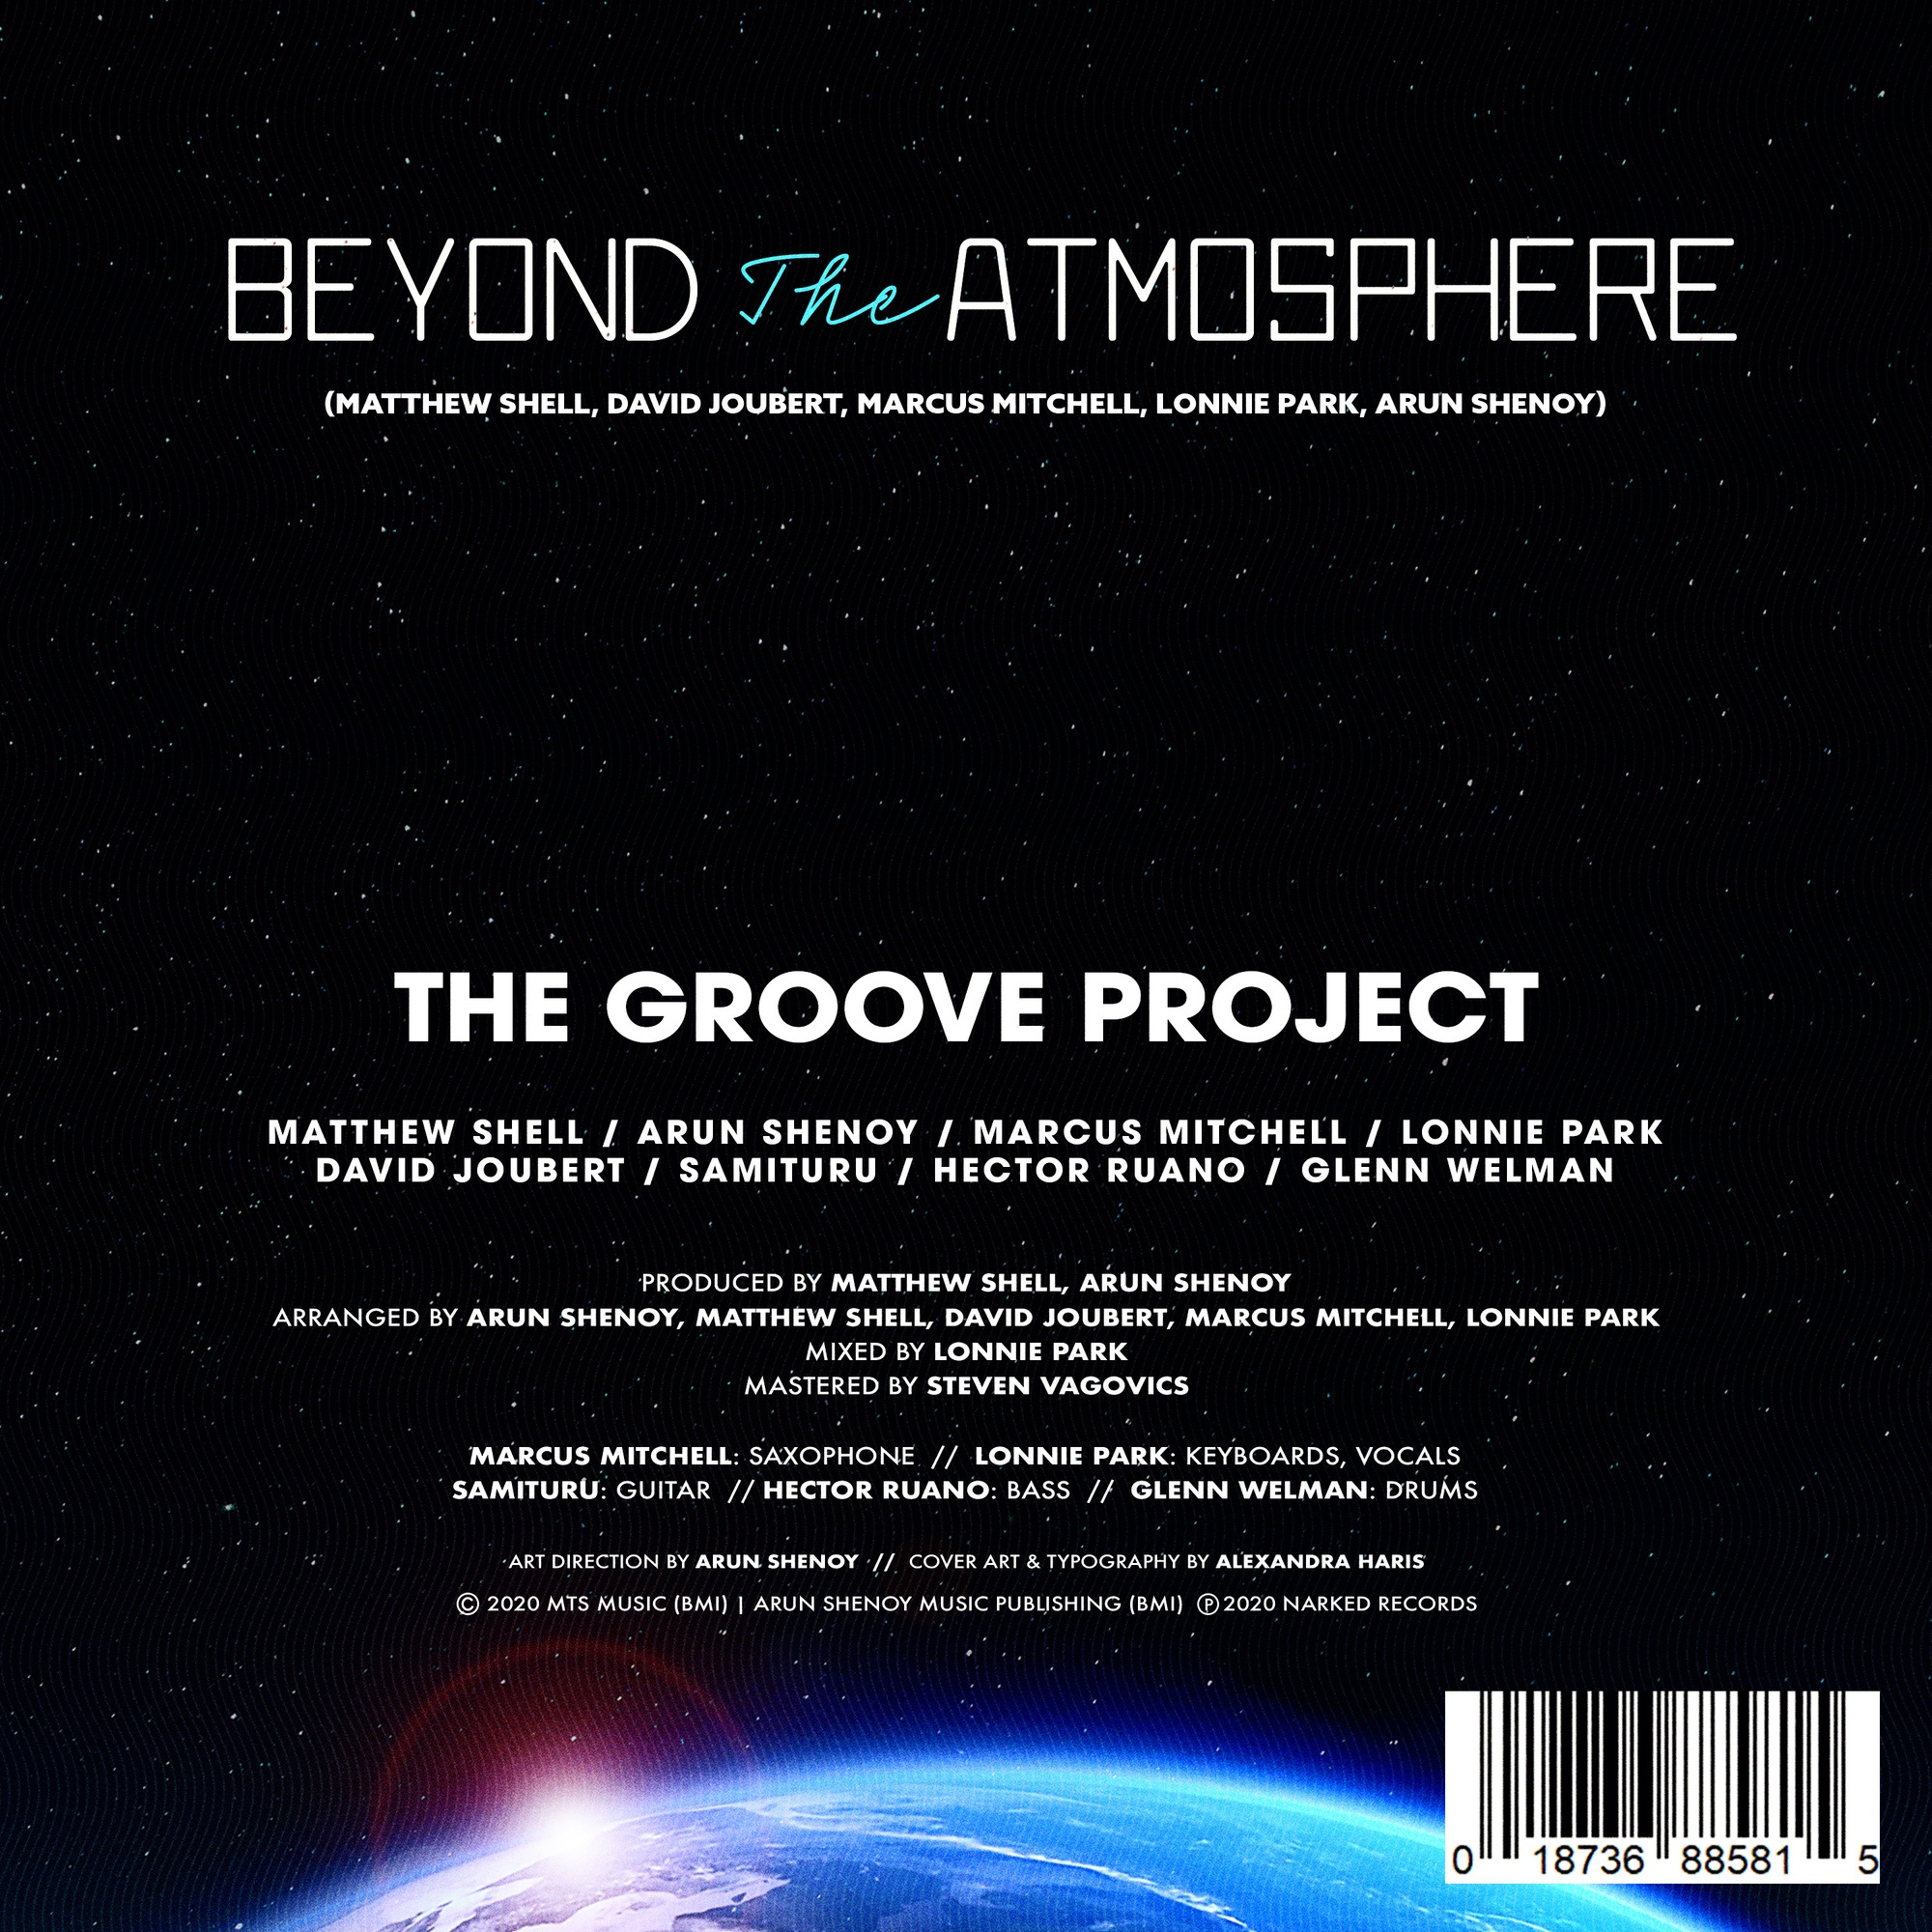 Beyond the Atmosphere - Credits Sheet